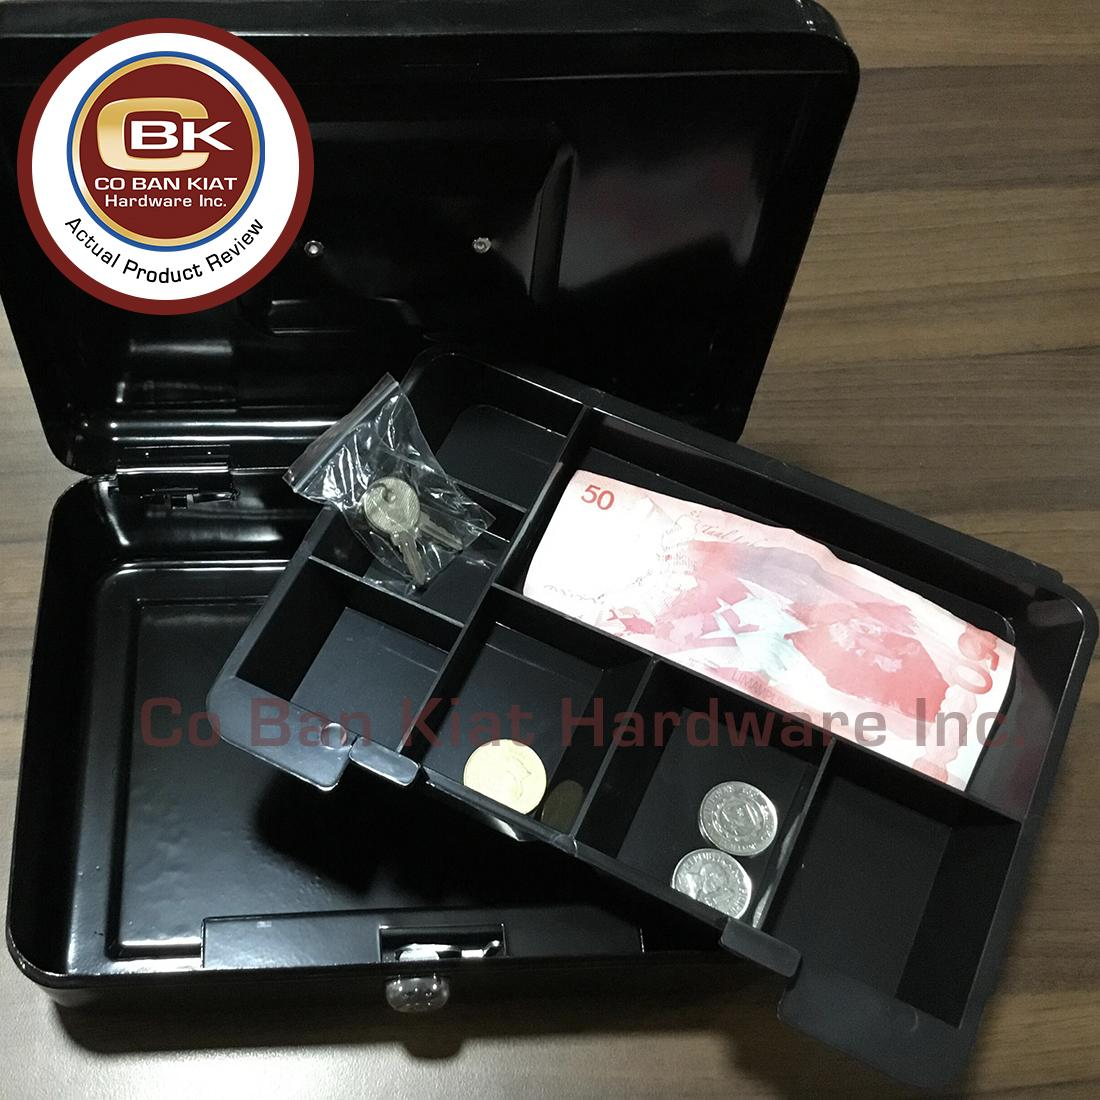 Safewell SF-YFC-25 Powder Coating Cash Box (Black) - versatile money box that fits Philippines bills and coins - anti rust and peeling resistant finish. Lightweight and Portable. It comes with 2 keys for added security. One removable tray.